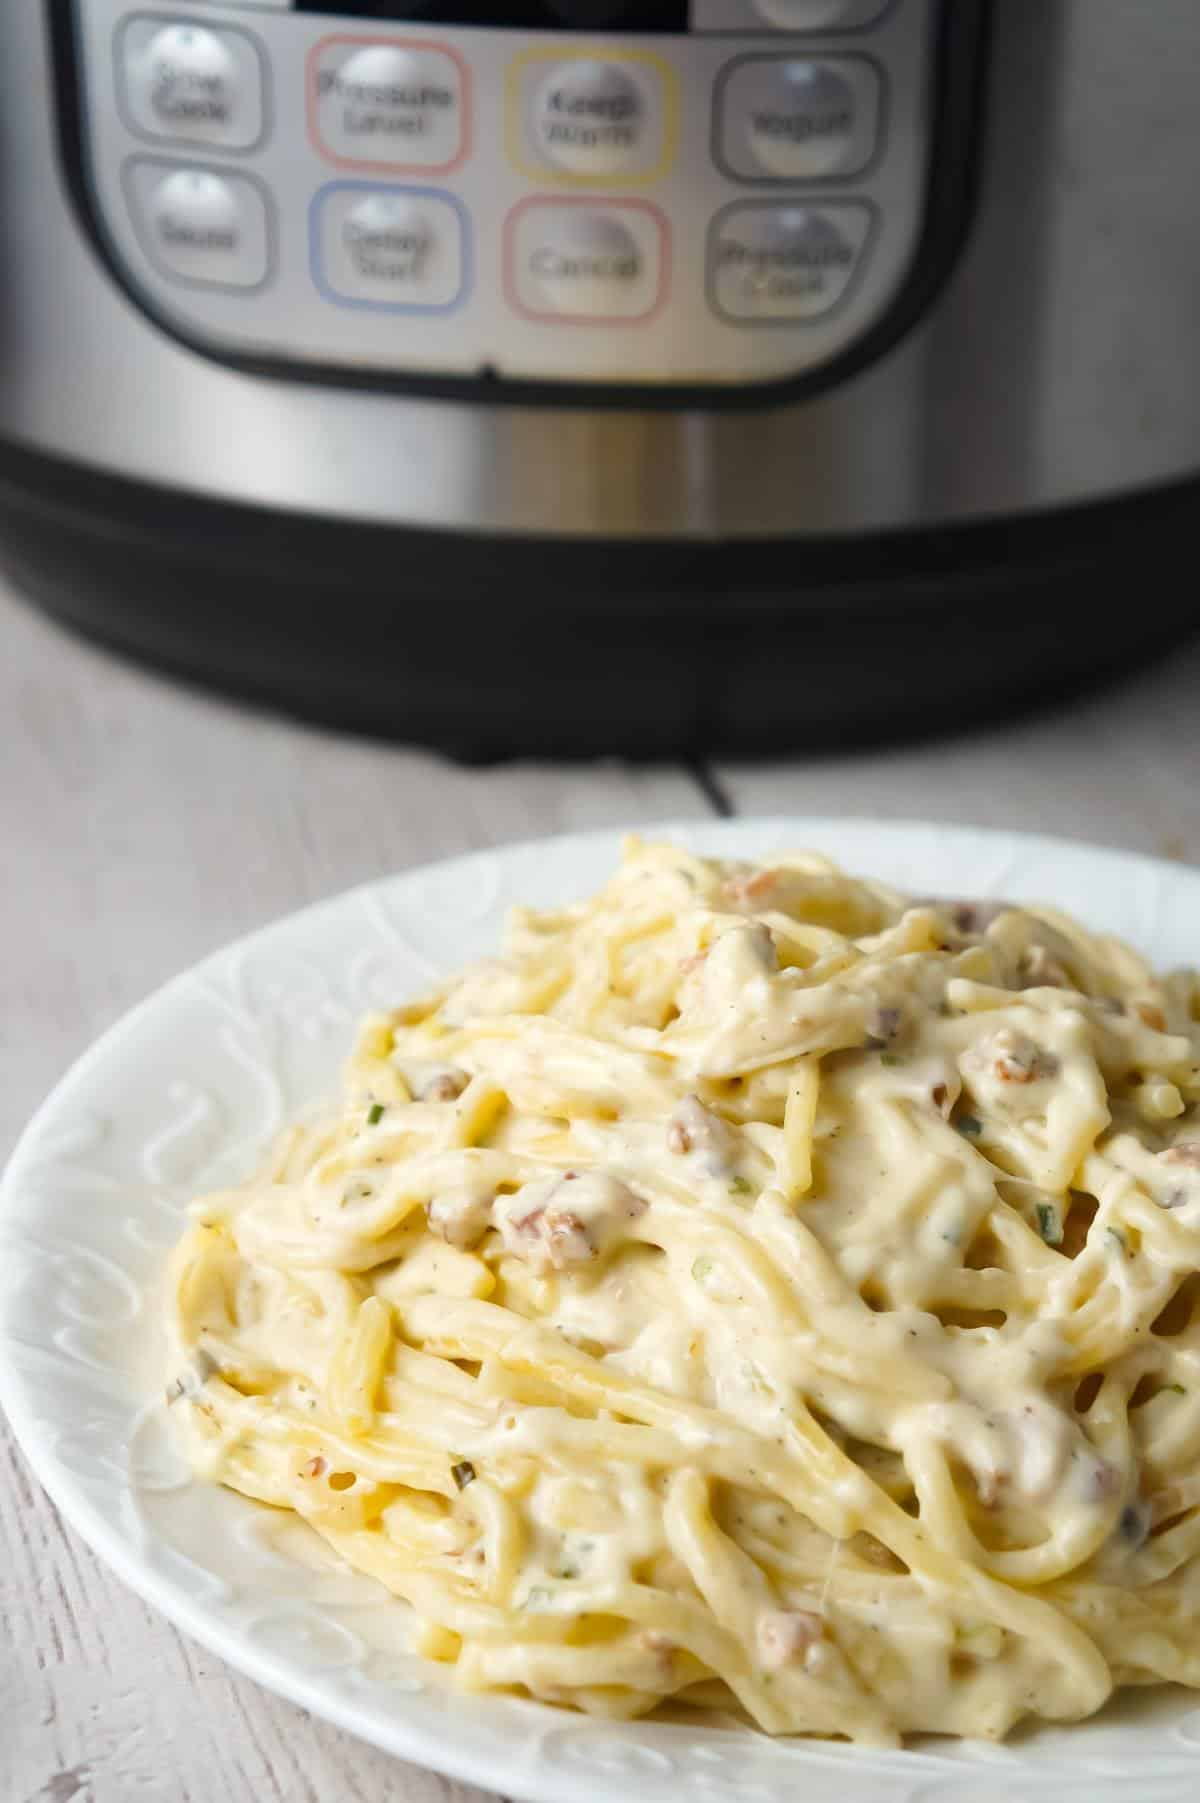 Instant Pot Bacon Cream Cheese Spaghetti is an easy pasta recipe made with heavy cream, chive and onion cream cheese, cream of bacon soup, shredded cheese and crumbled bacon.